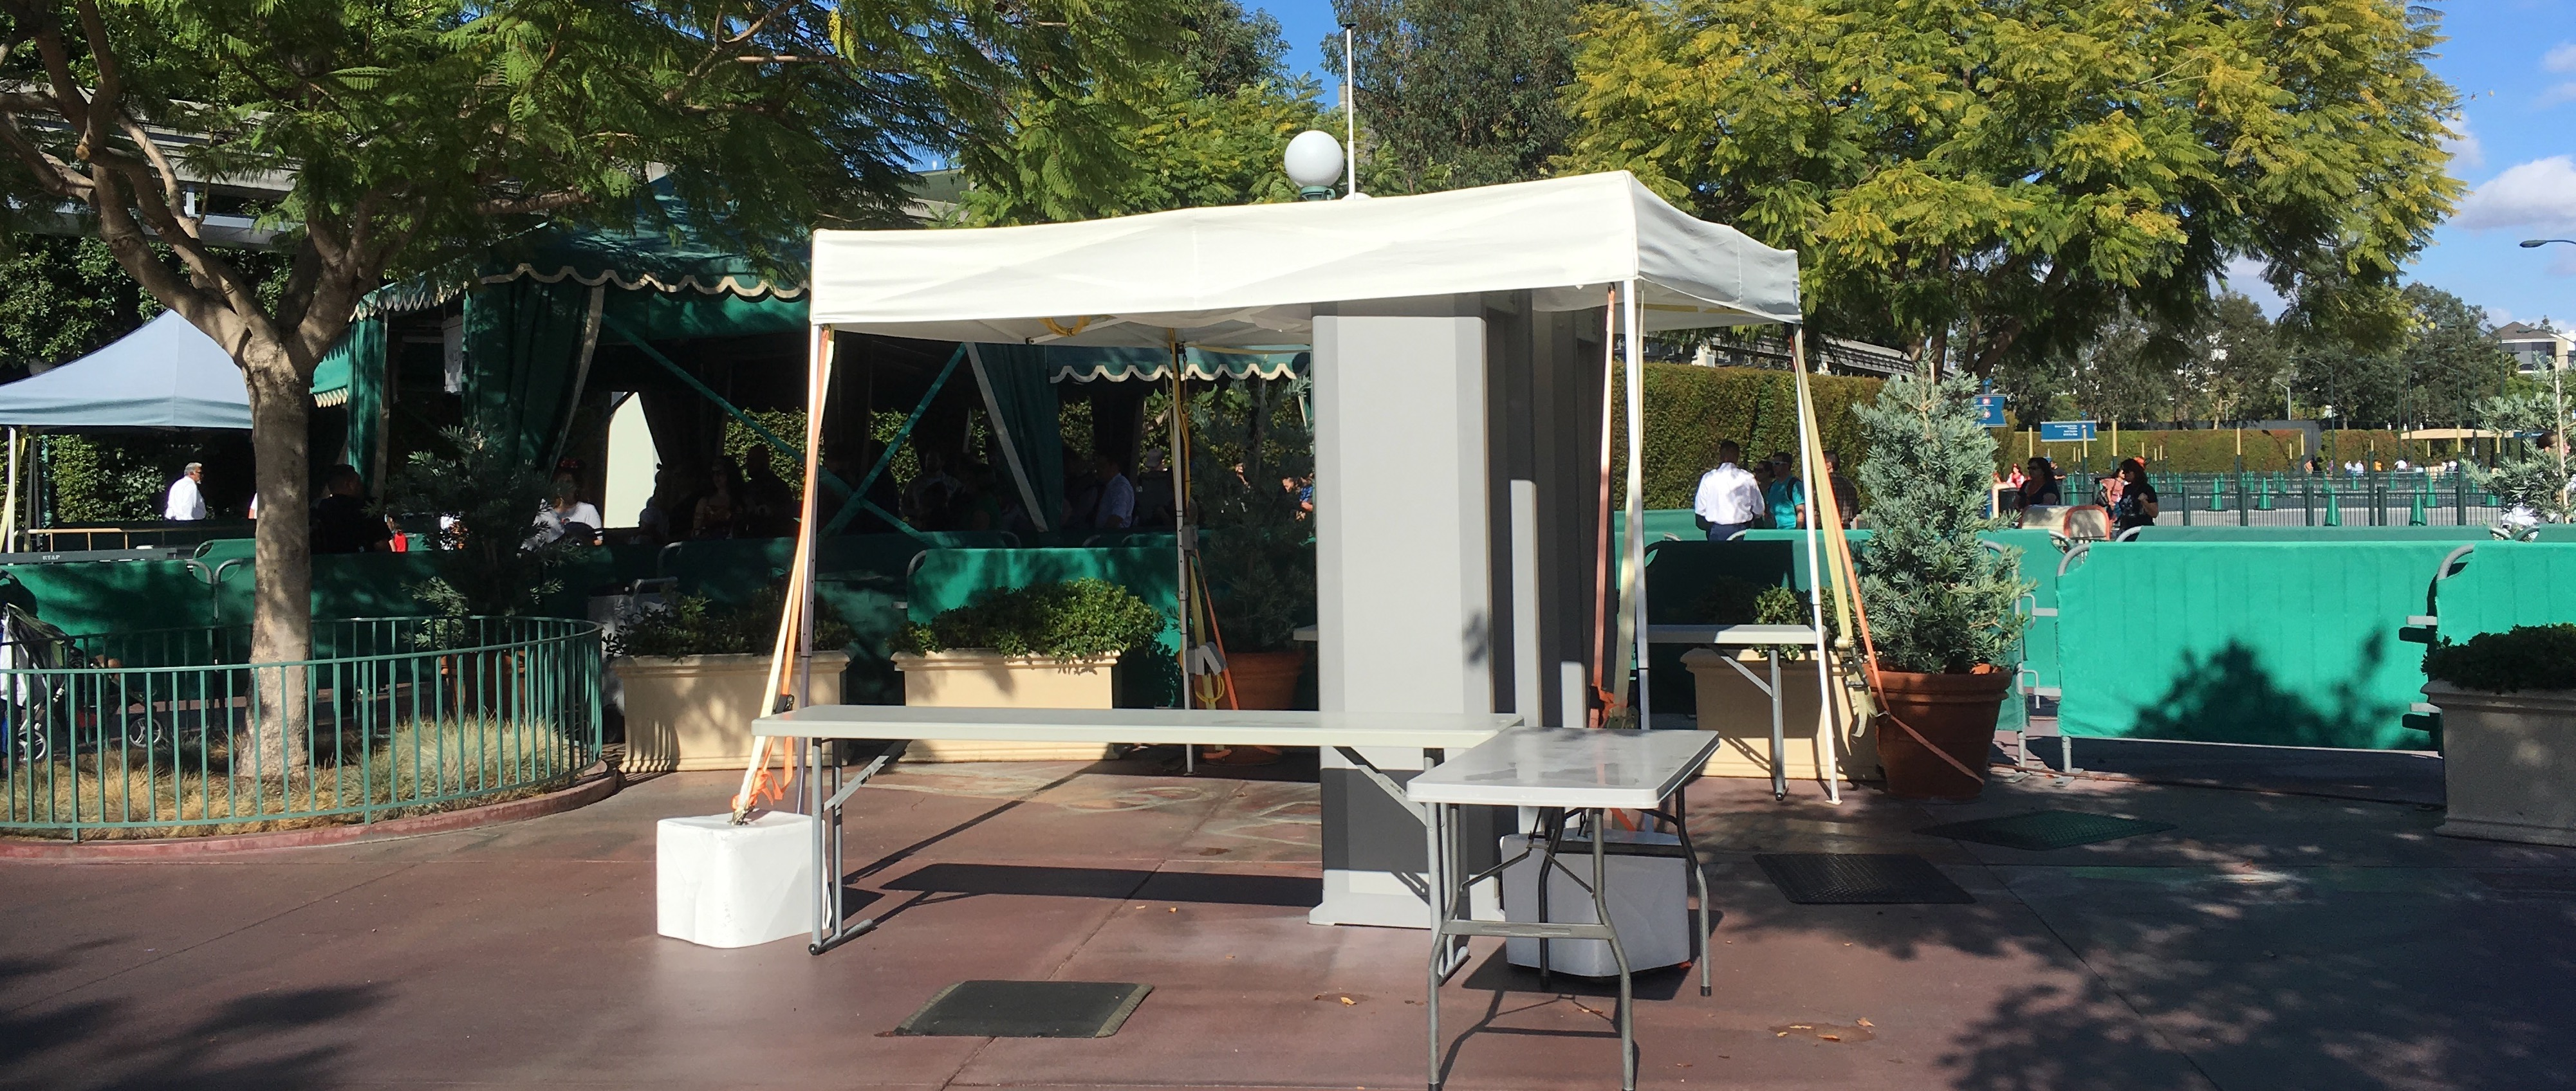 white pop up canopy with ripped top and pole sticking out